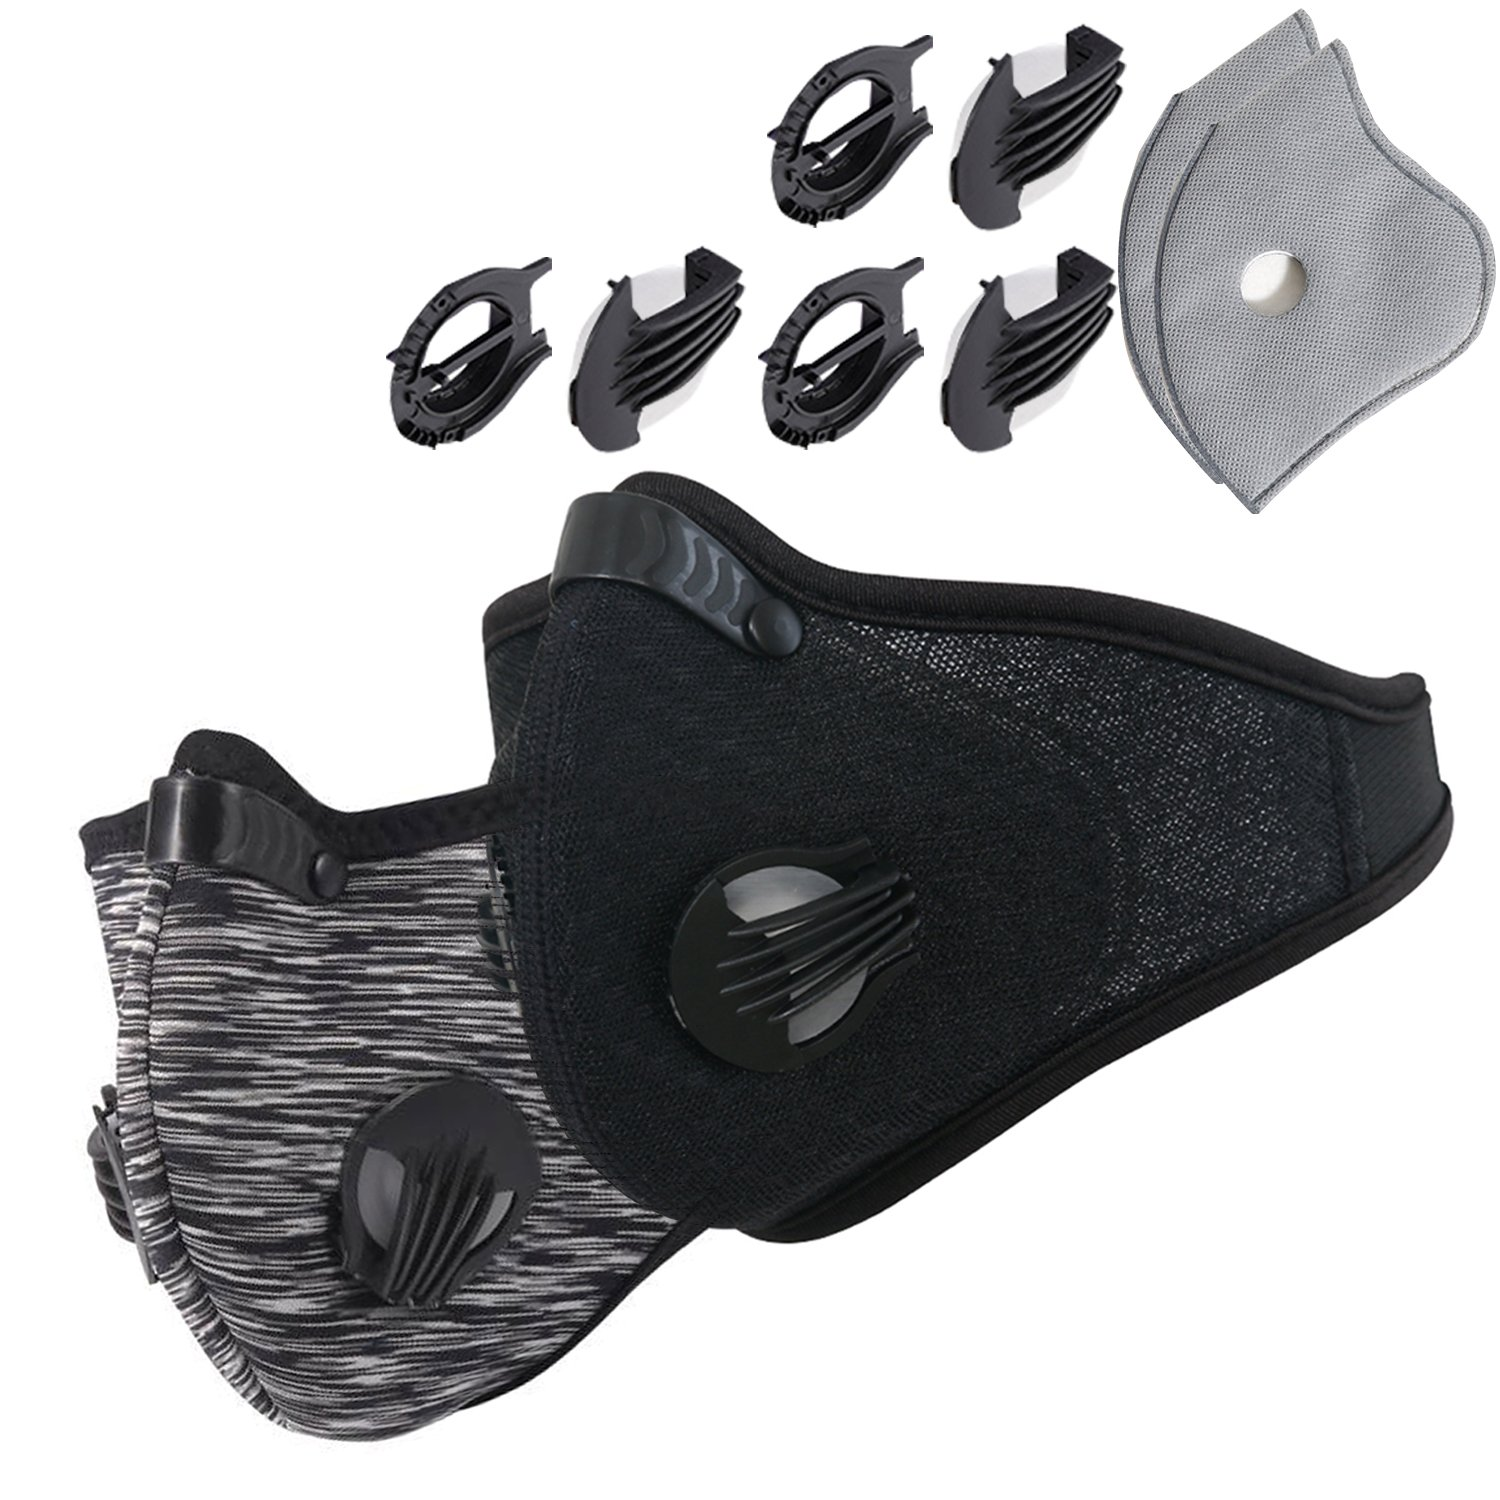 Dustproof Masks - Activated Carbon Dust Mask with Extra Filter Cotton Sheet and Valves for Exhaust Gas, Pollen Allergy, PM2.5, Running, Cycling, Outdoor Activities (2 Set Black and Gray, Dust Masks)